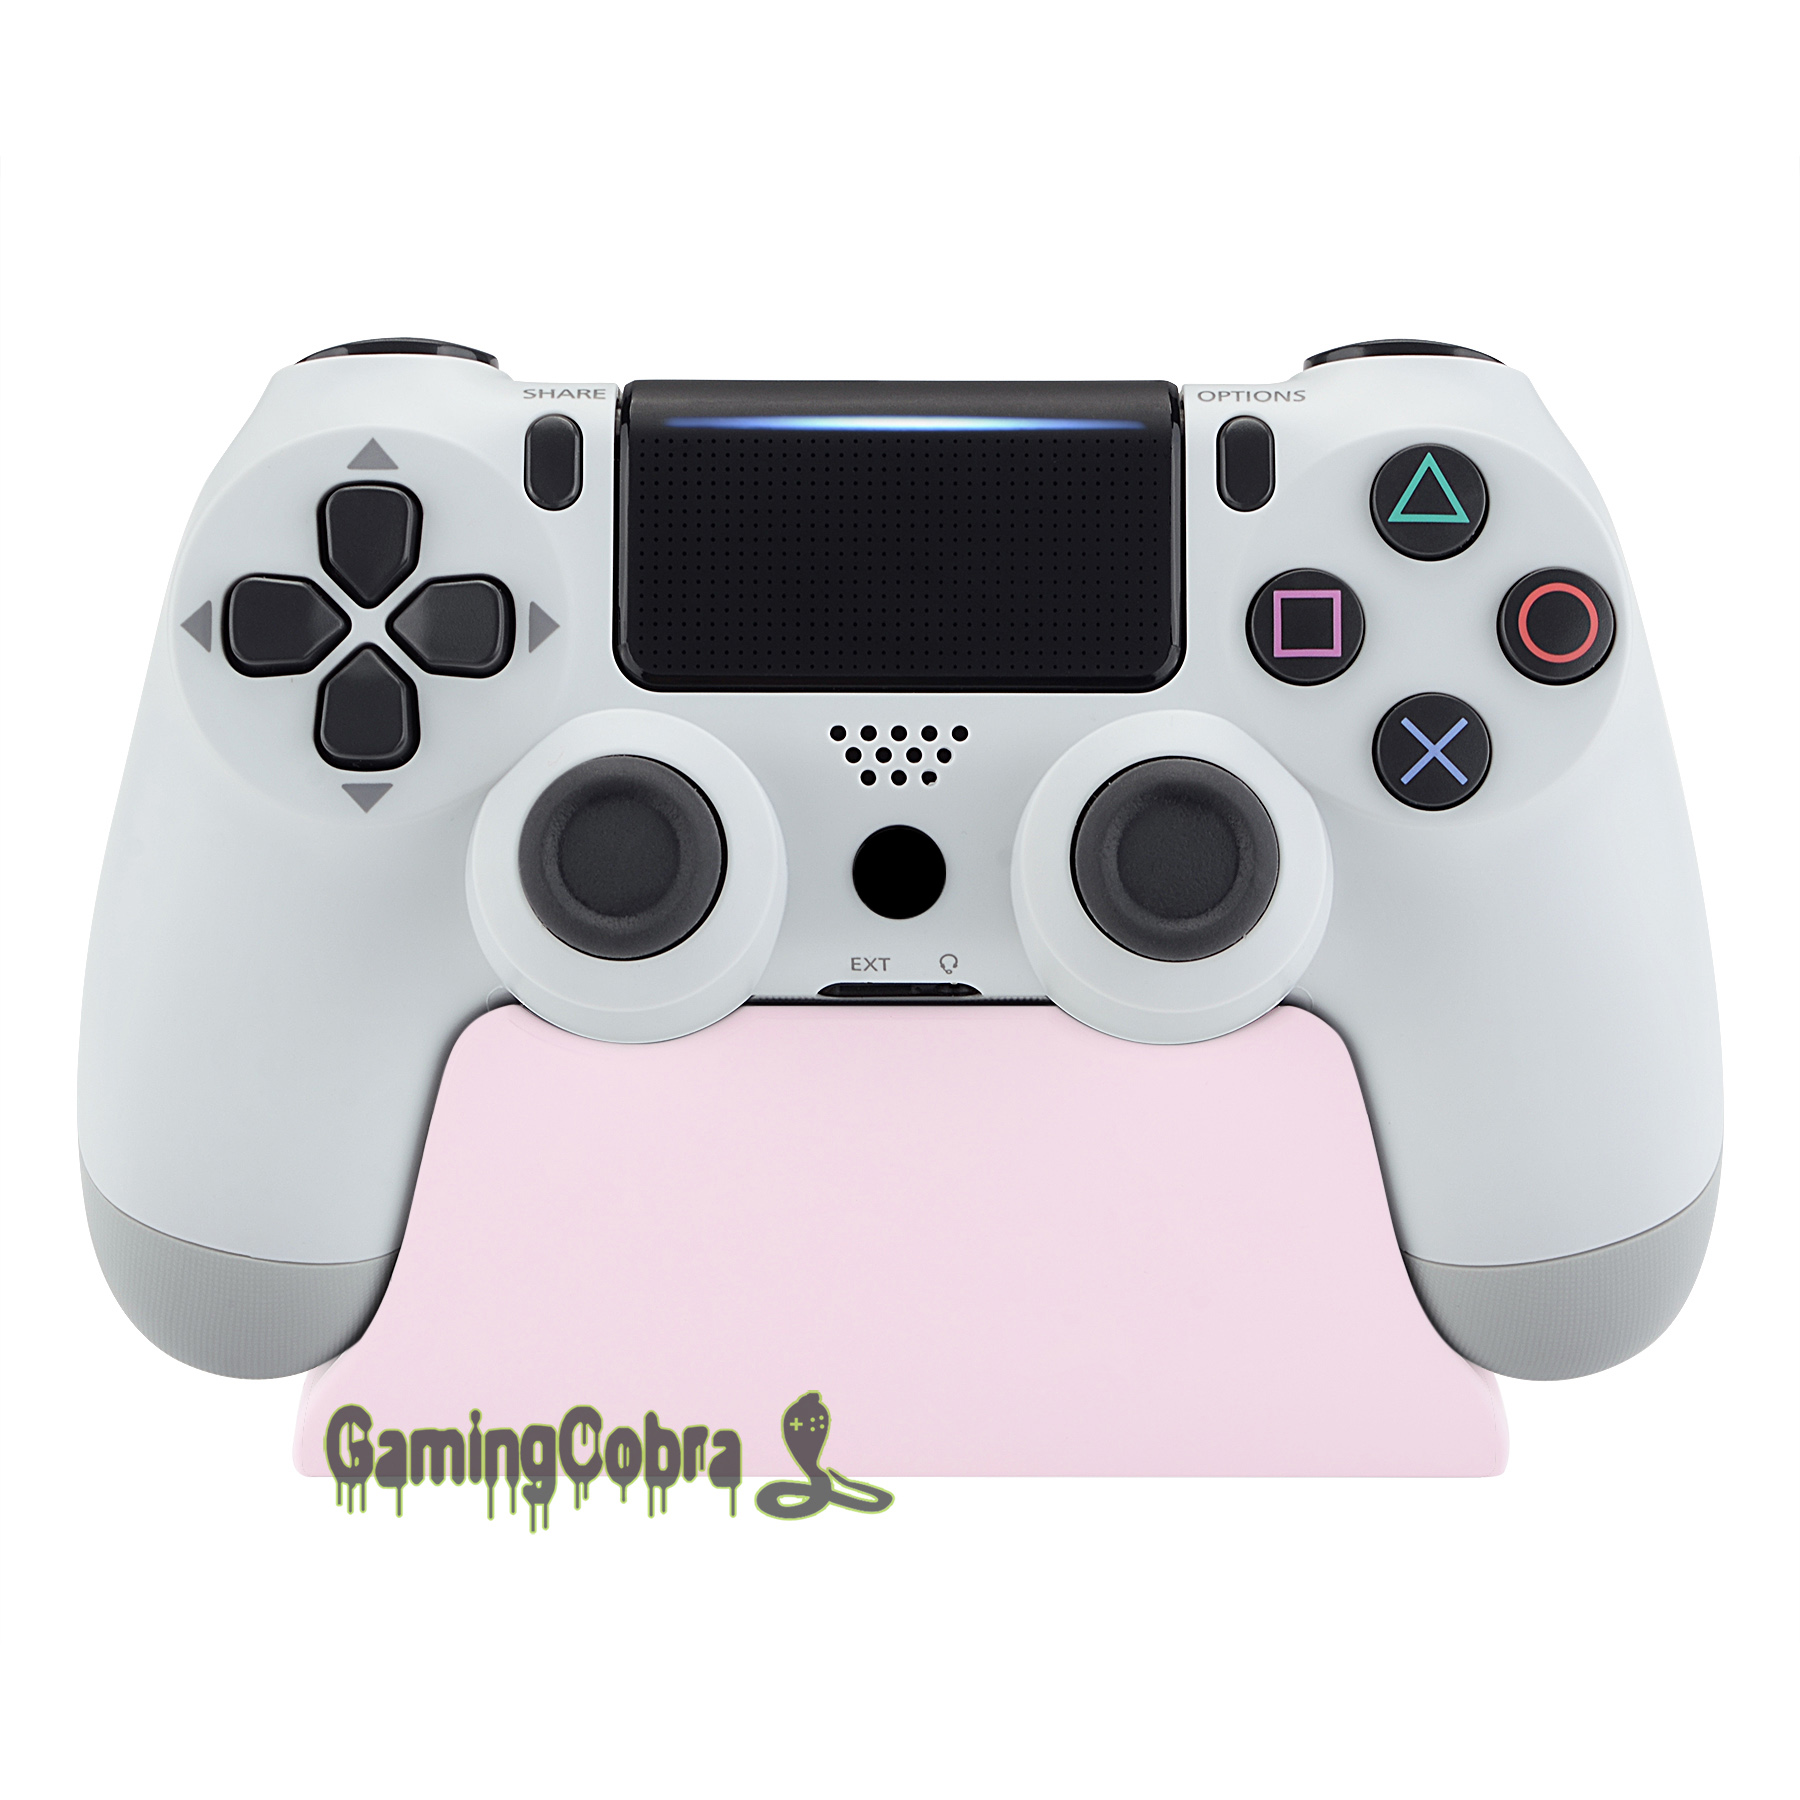 Sakura Pink Controller Display Stand Gamepad Desk Holder For PlayStation 4 PS4 Slim PS4 Pro Controller With Rubber Pads